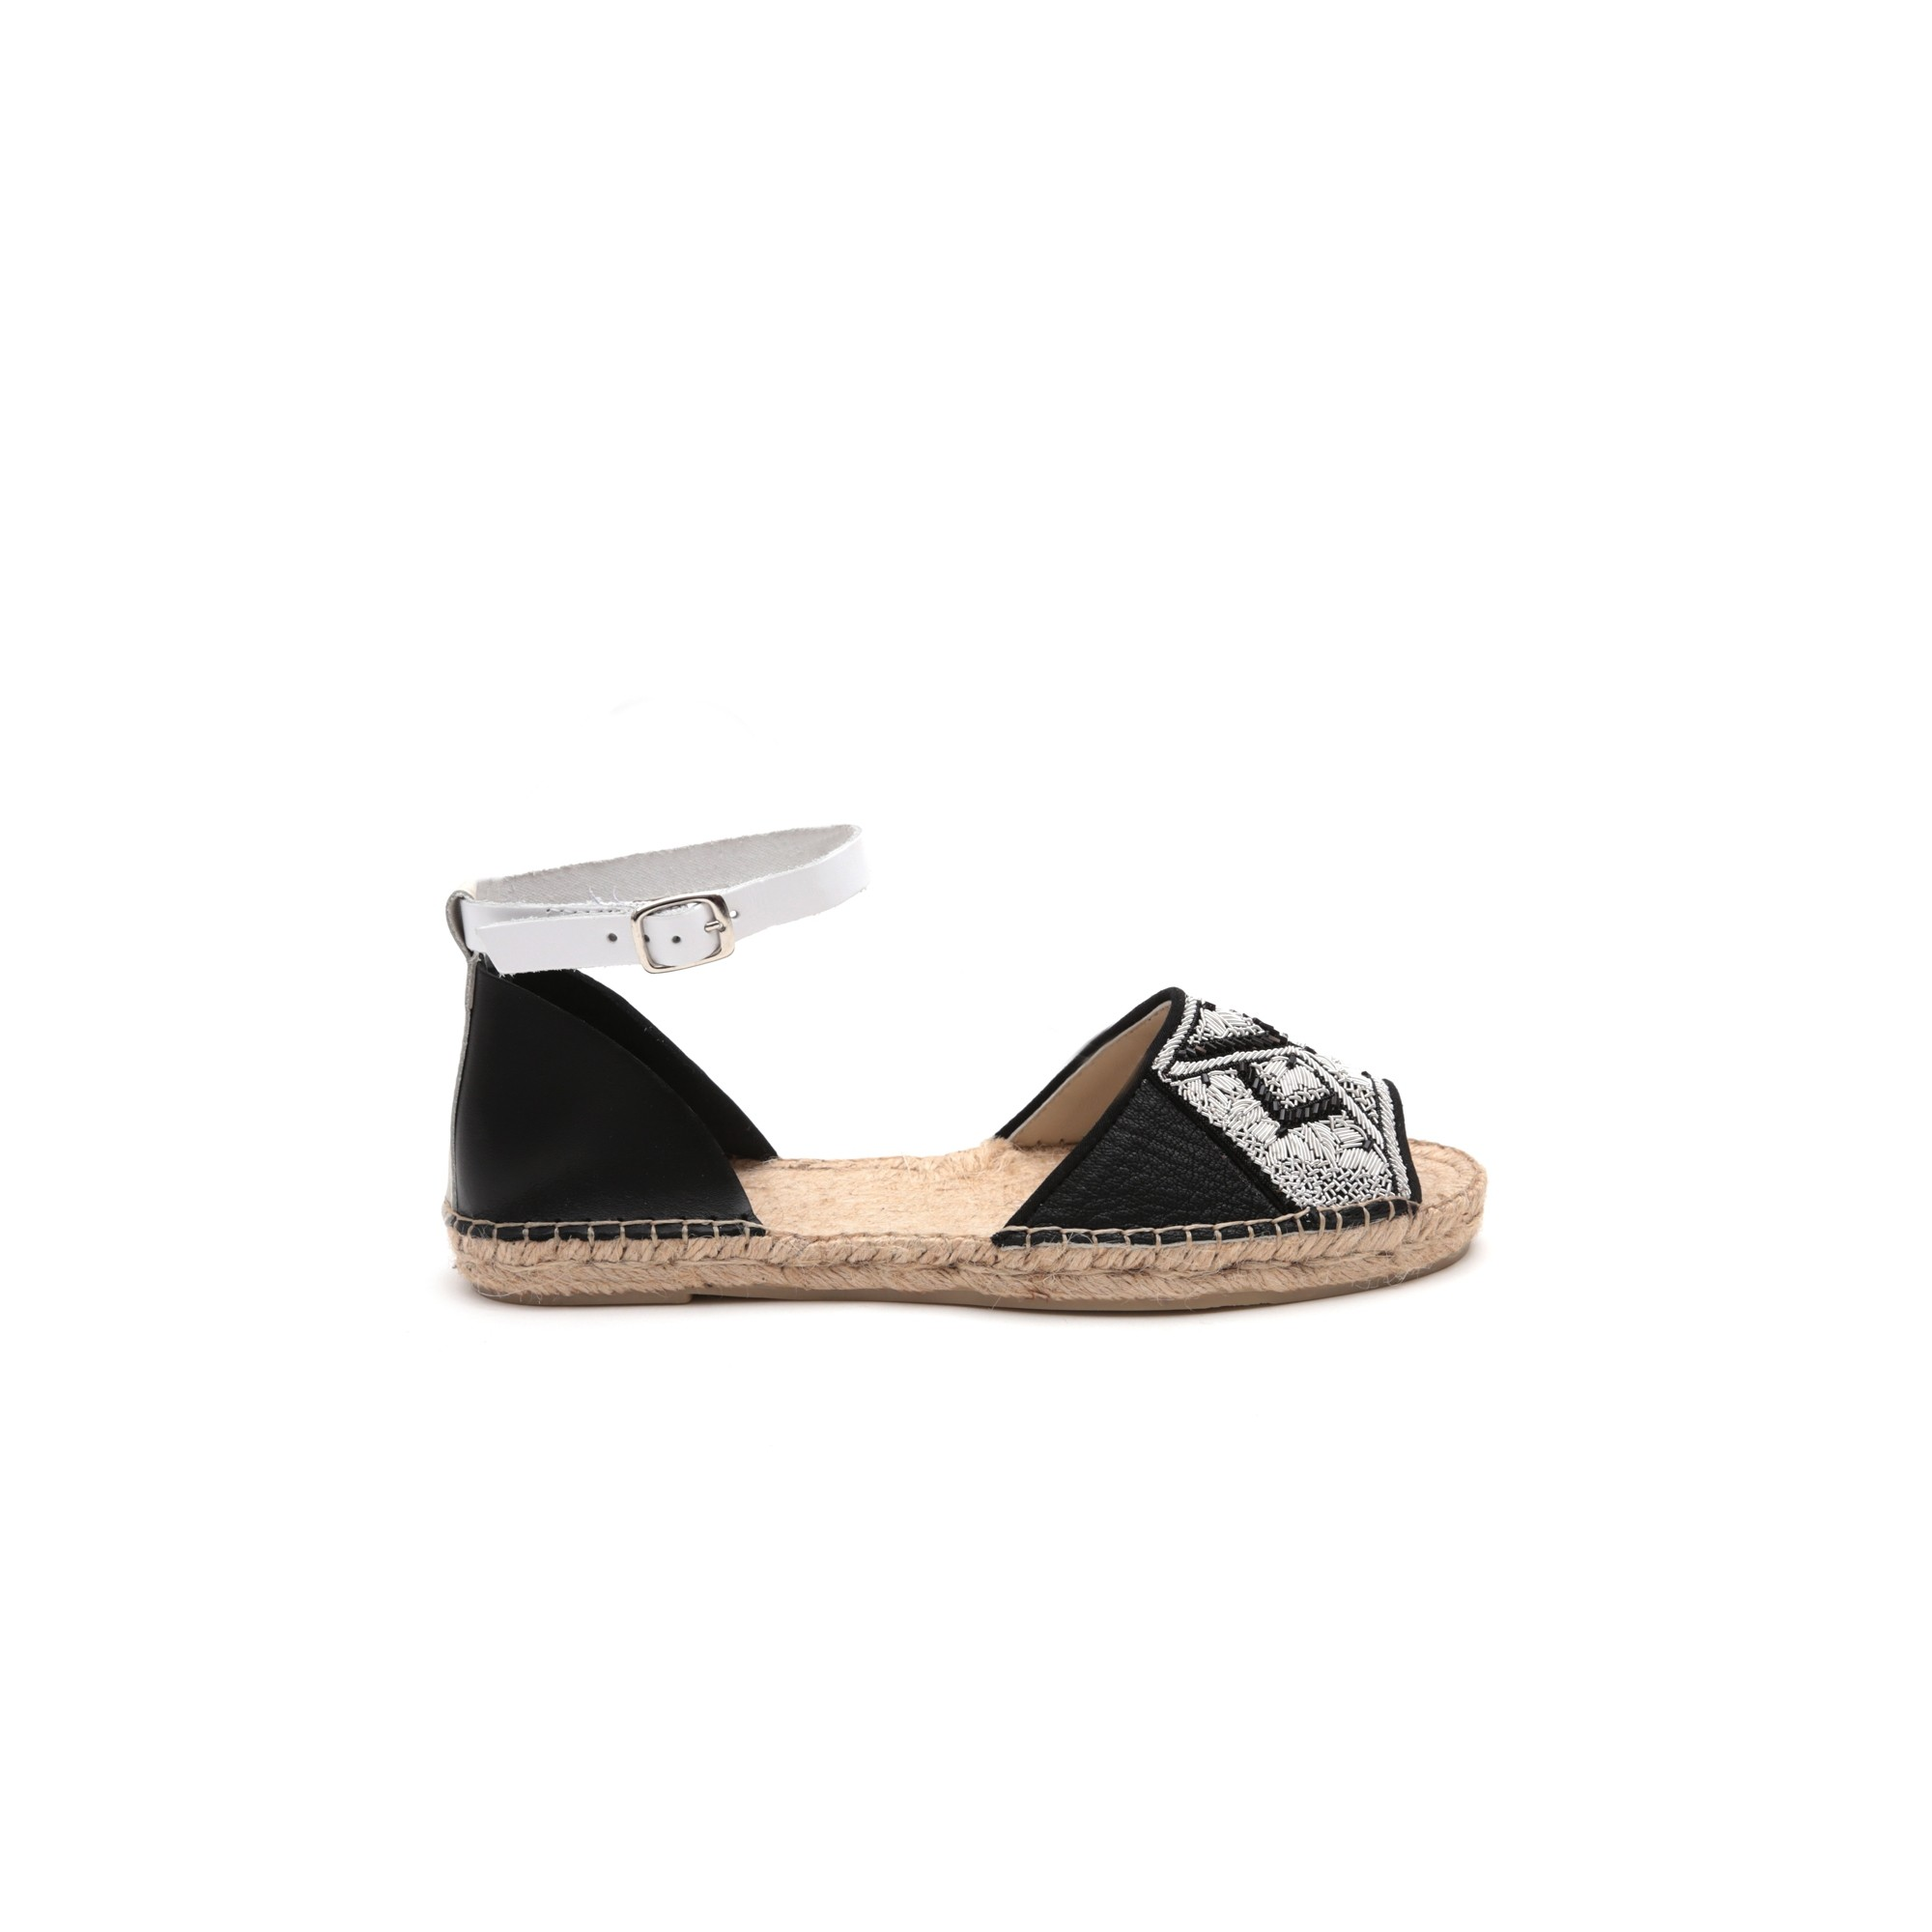 Meher Kakalia QUEEN YUCA SANDAL - BLACK/WHITESTOCK